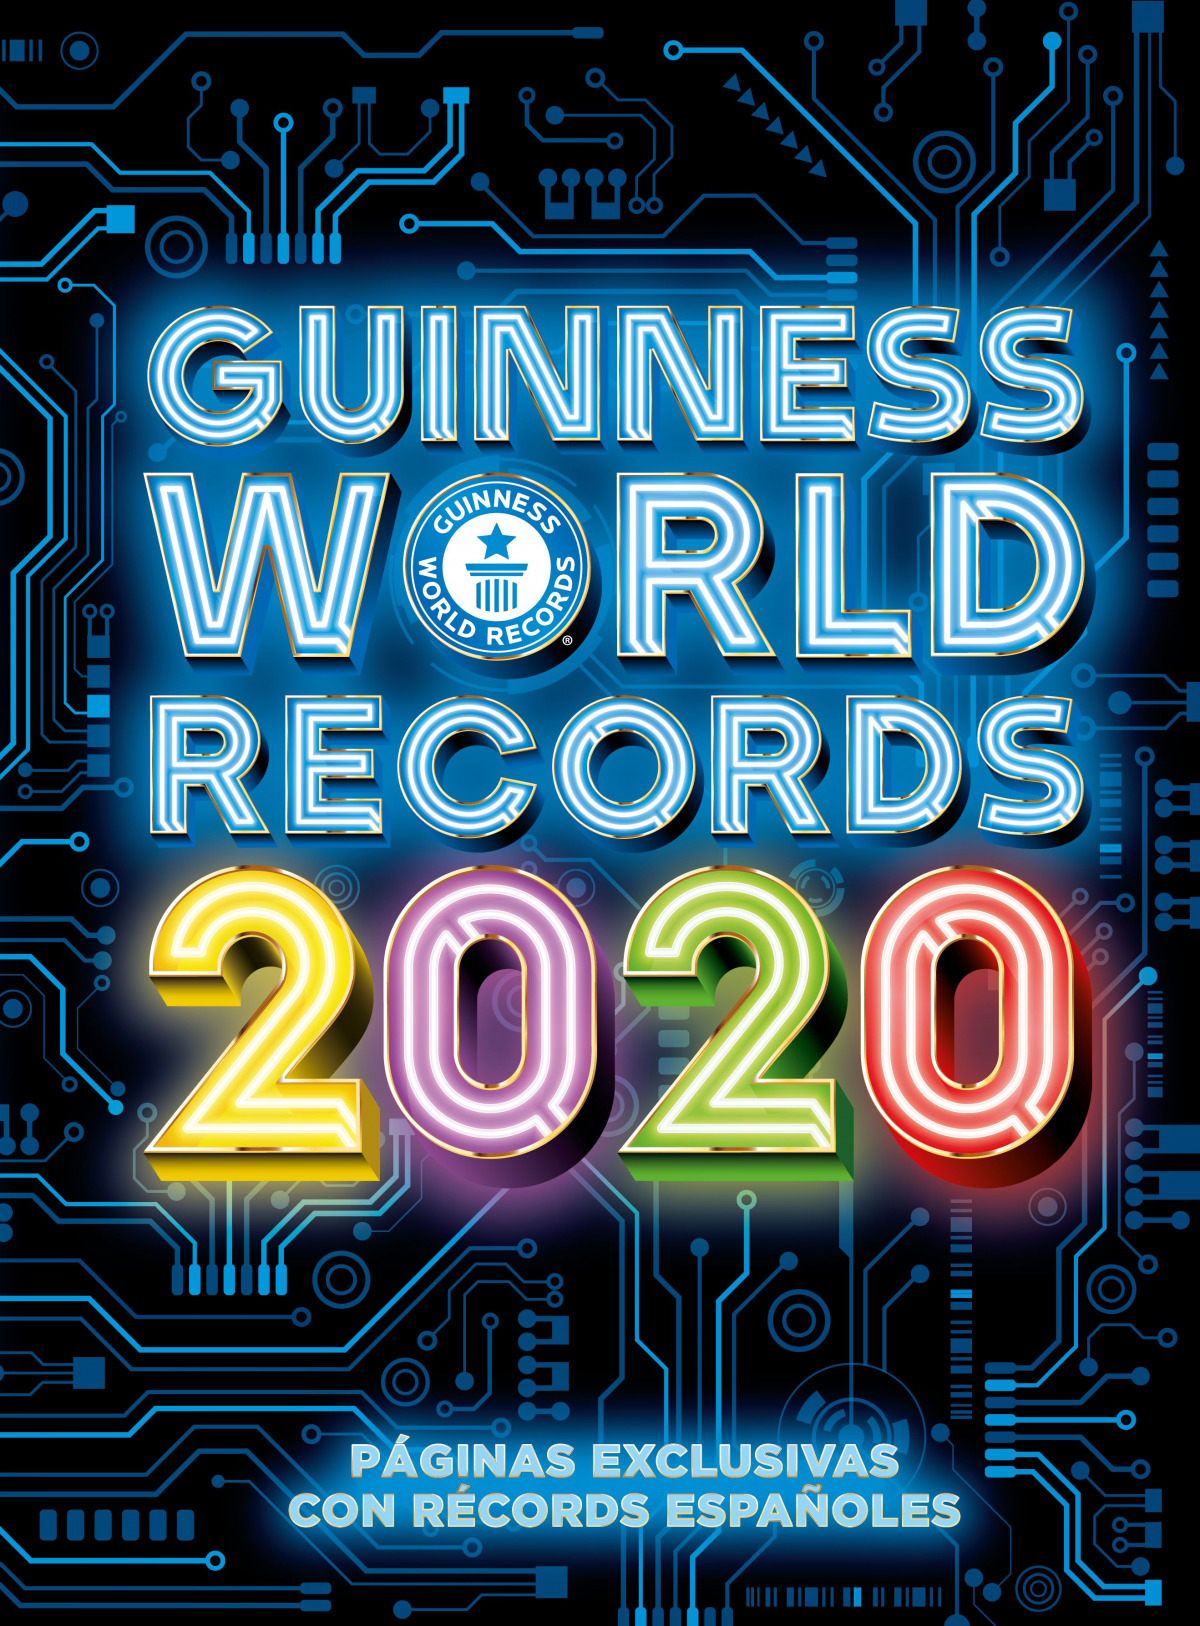 GUINNESS 2020 WORLD RECORDS 9788408212904